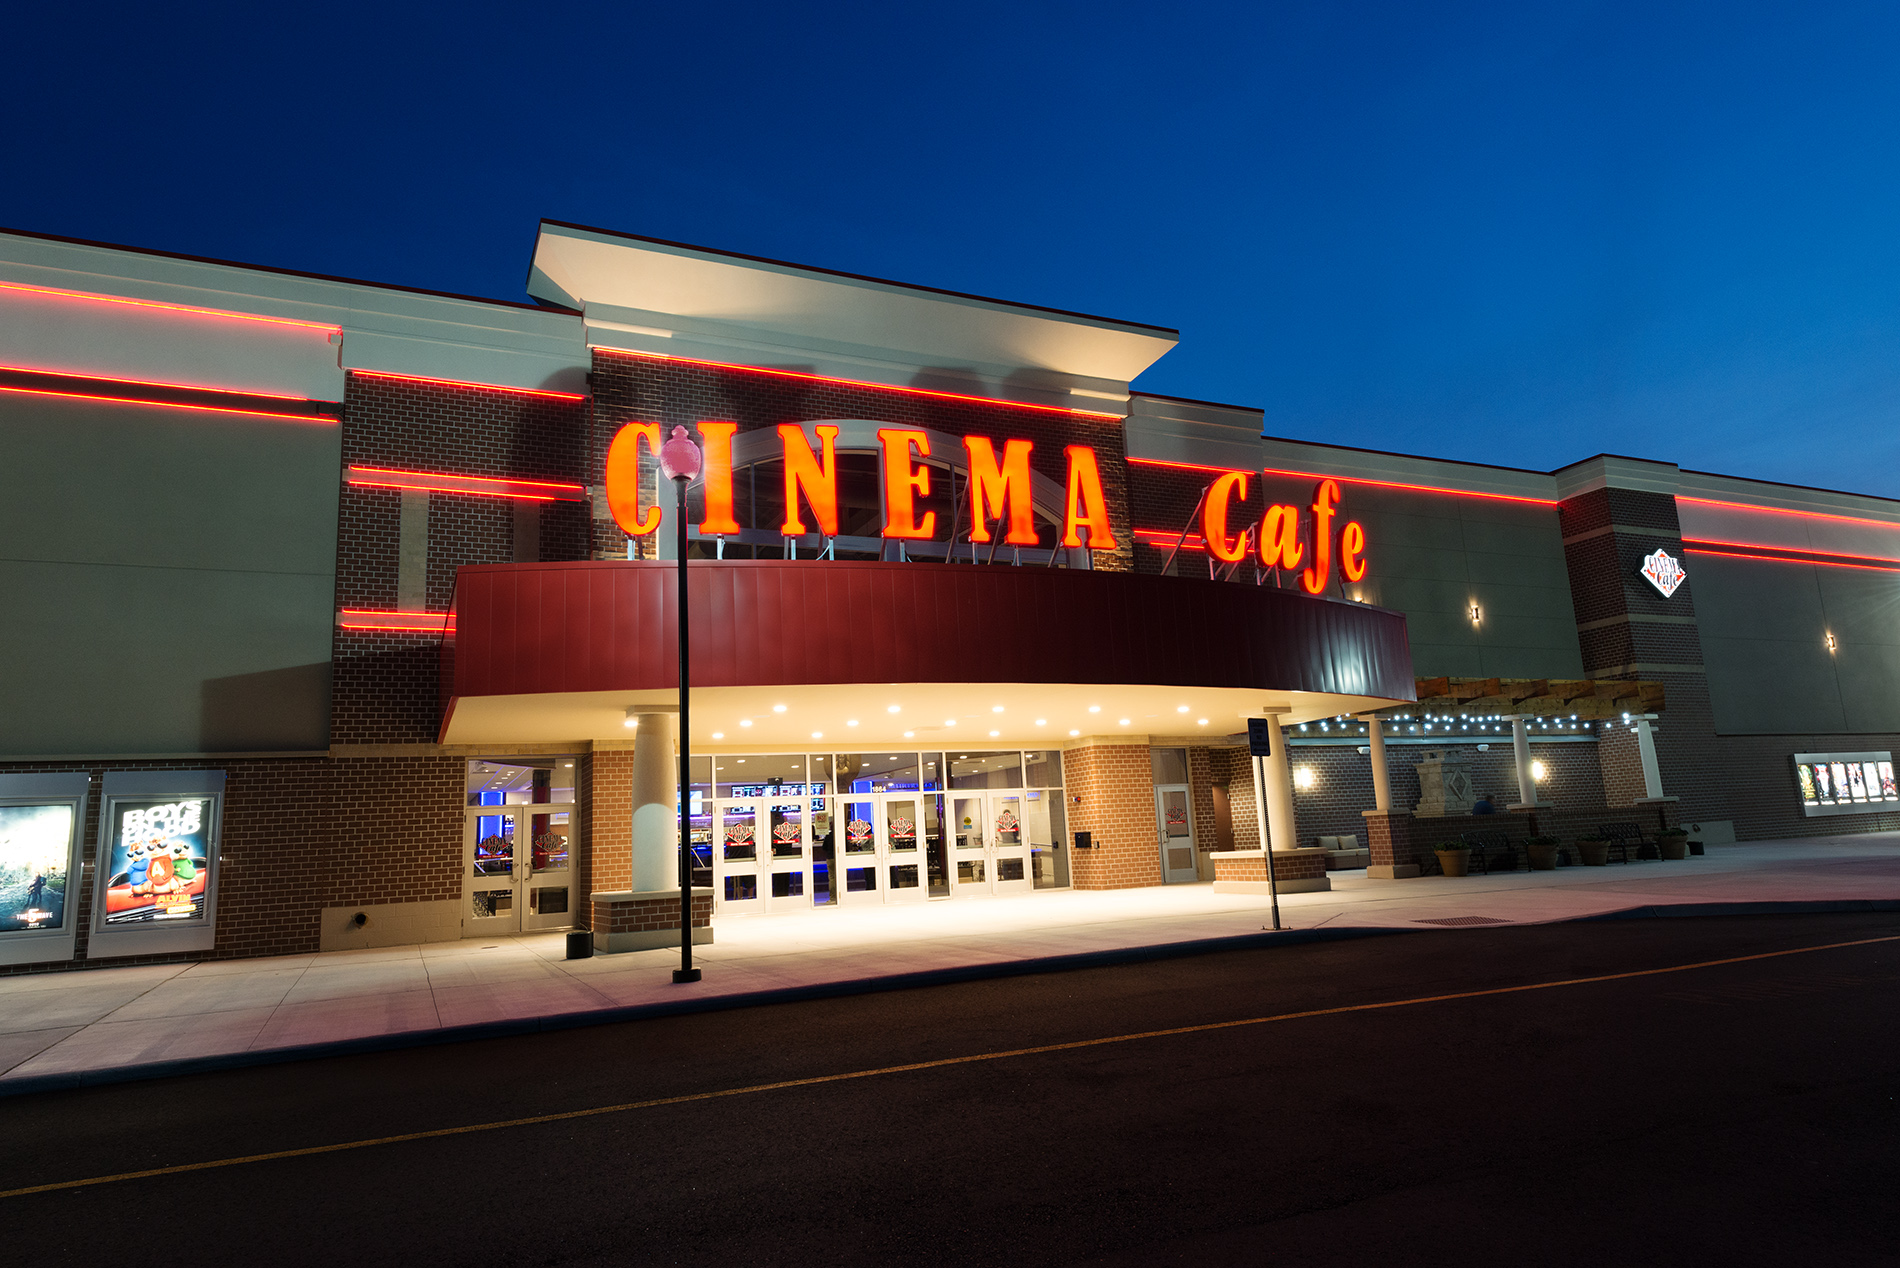 Virginia Beach Movies Cinema Cafe